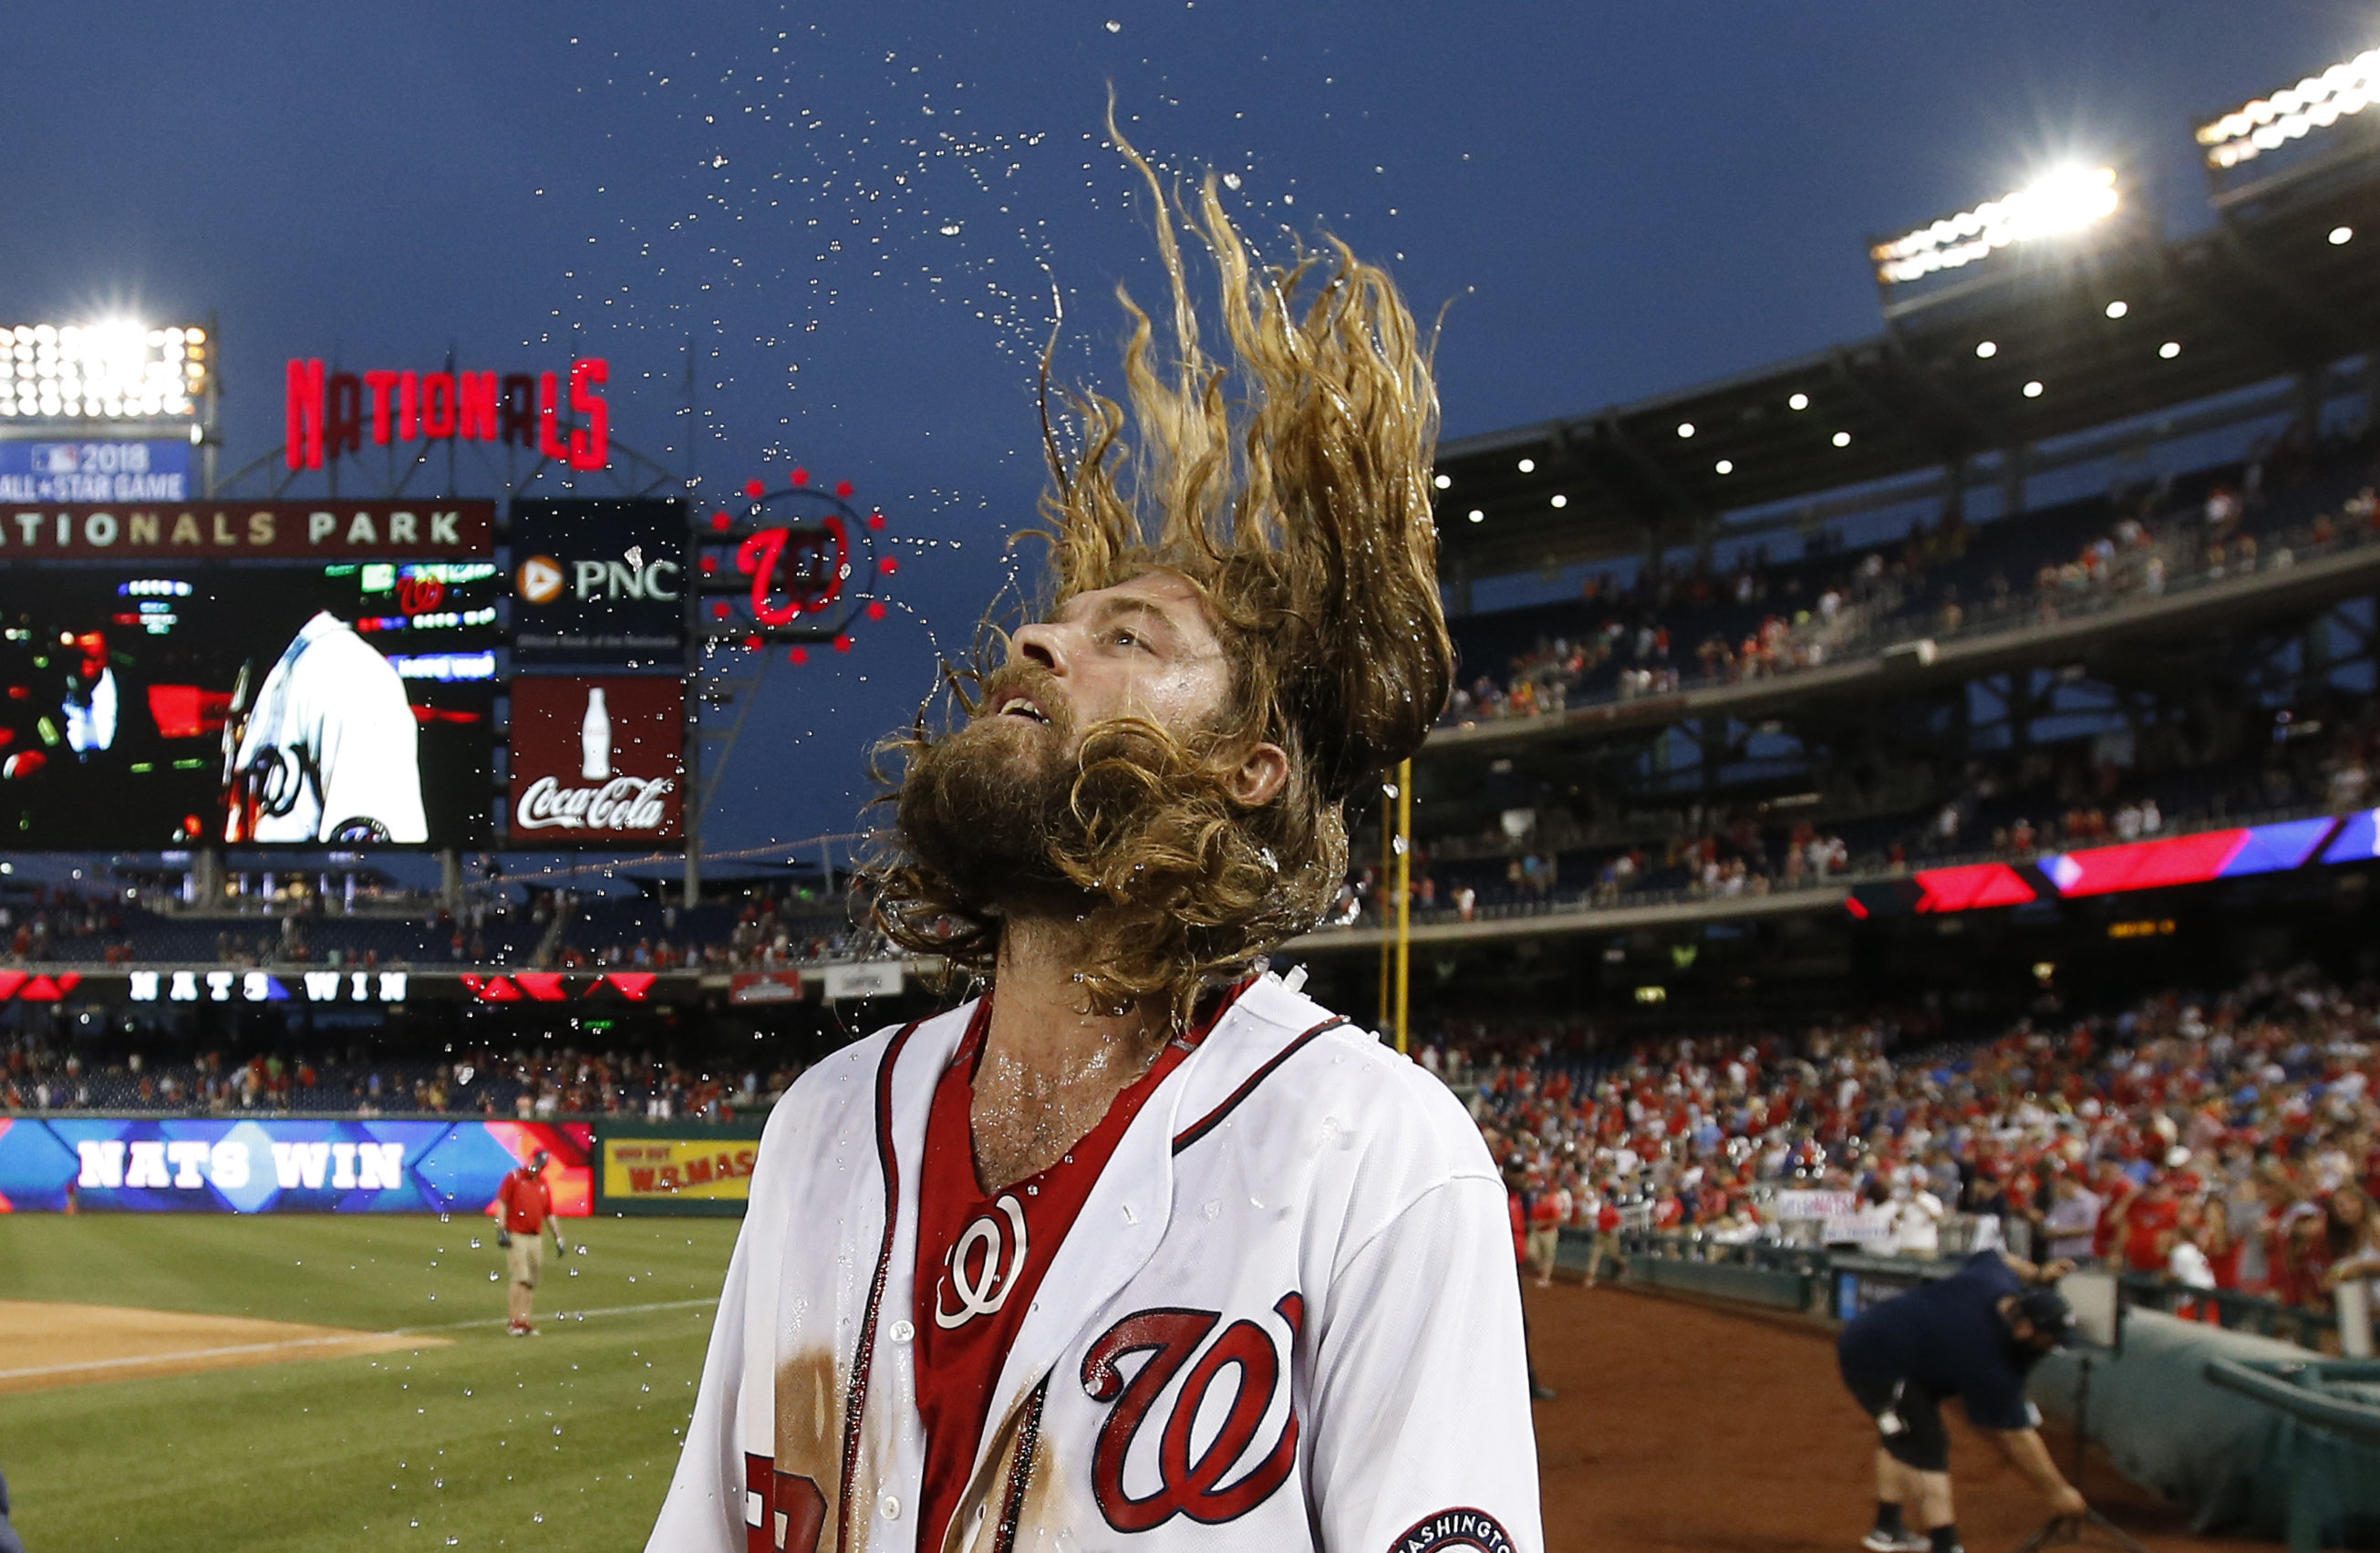 Nationals' Werth lets fly in celebratory postgame interview (Video)